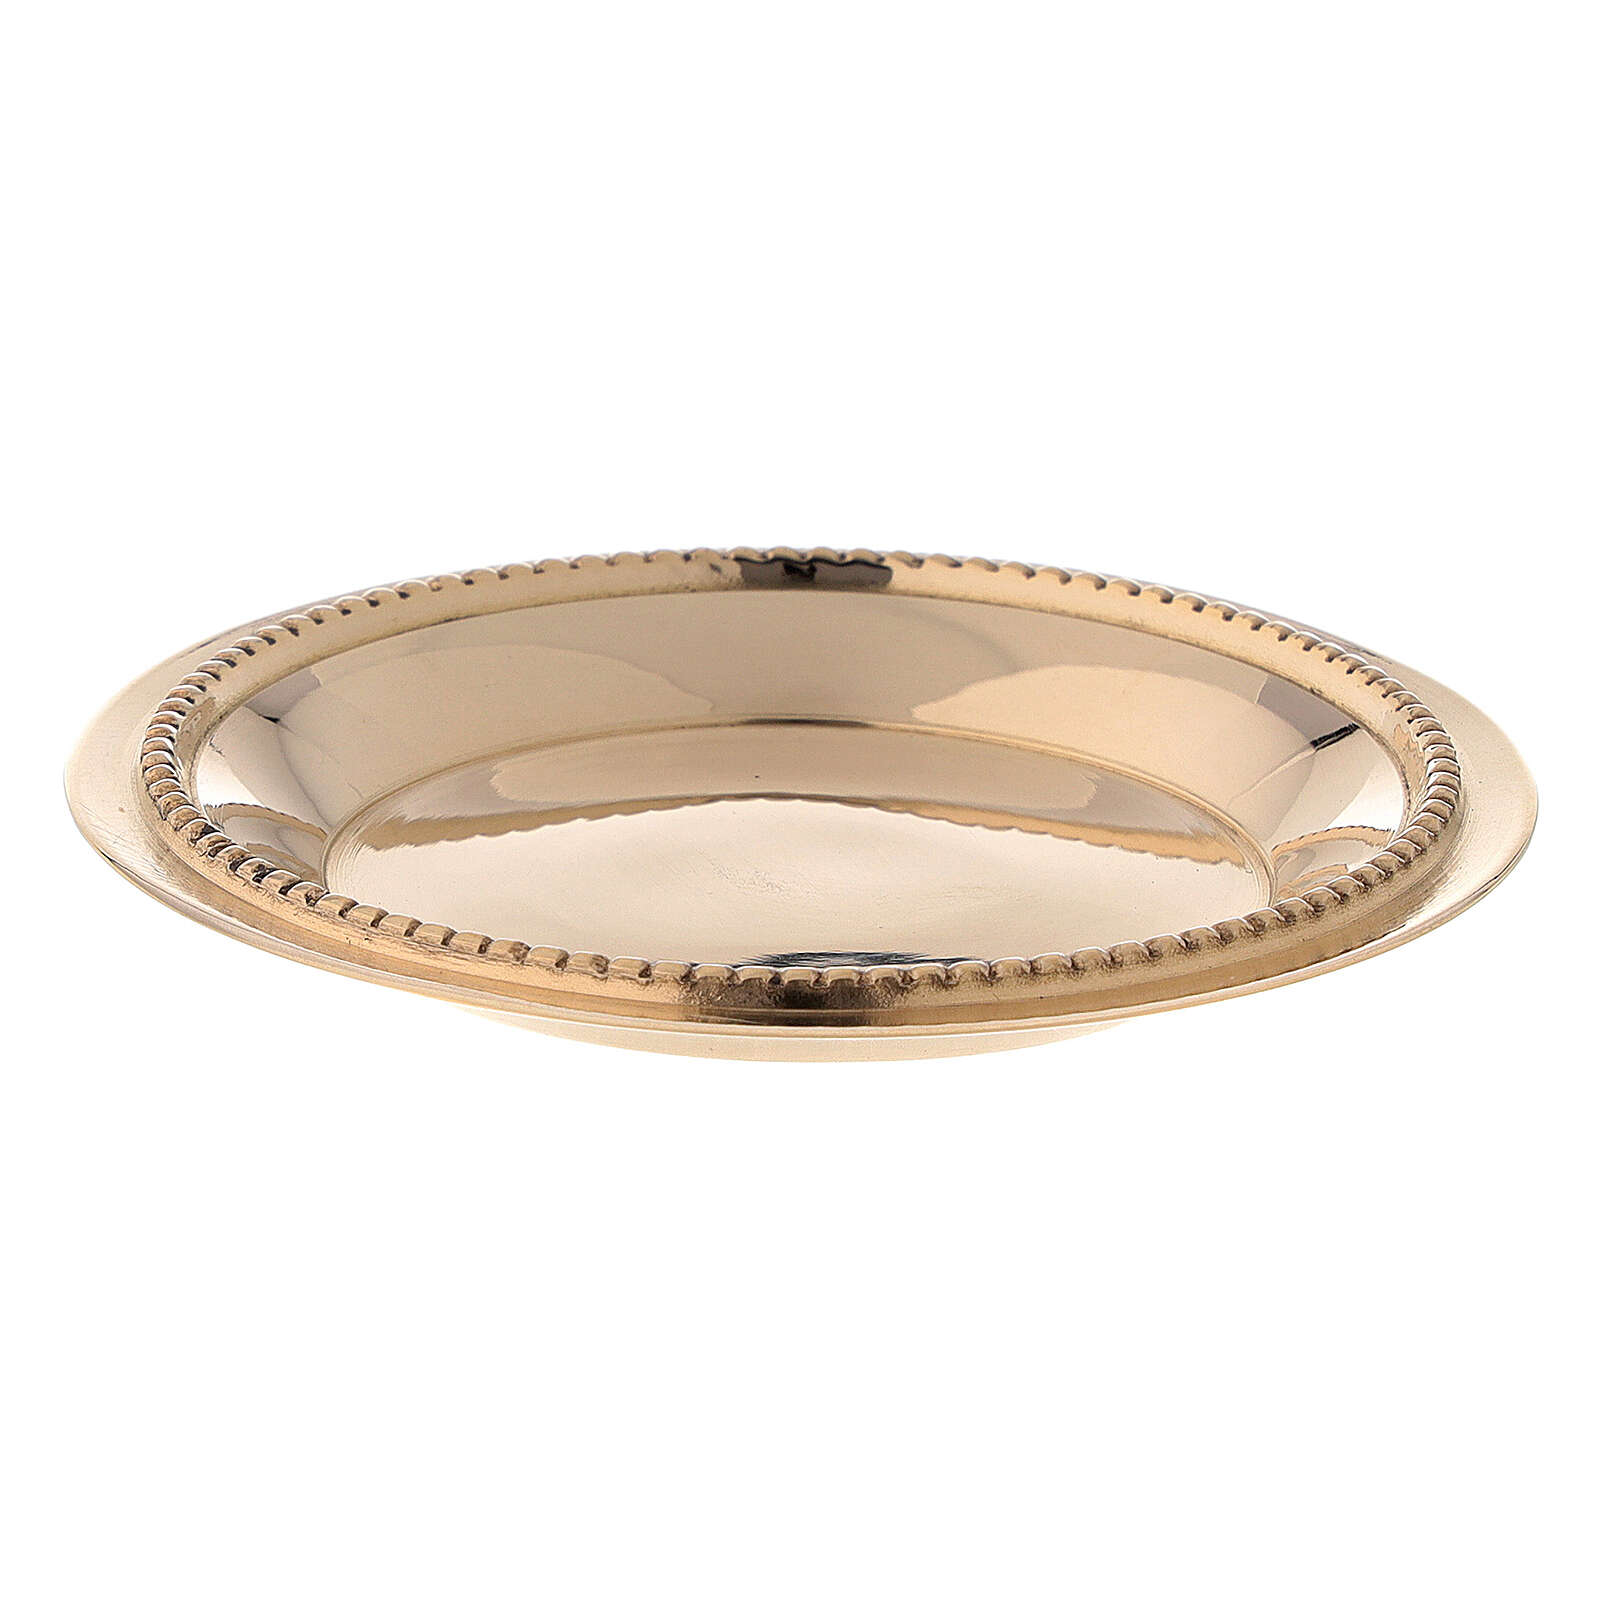 Candle holder plate in gold plated brass with satin finish 3 in 3